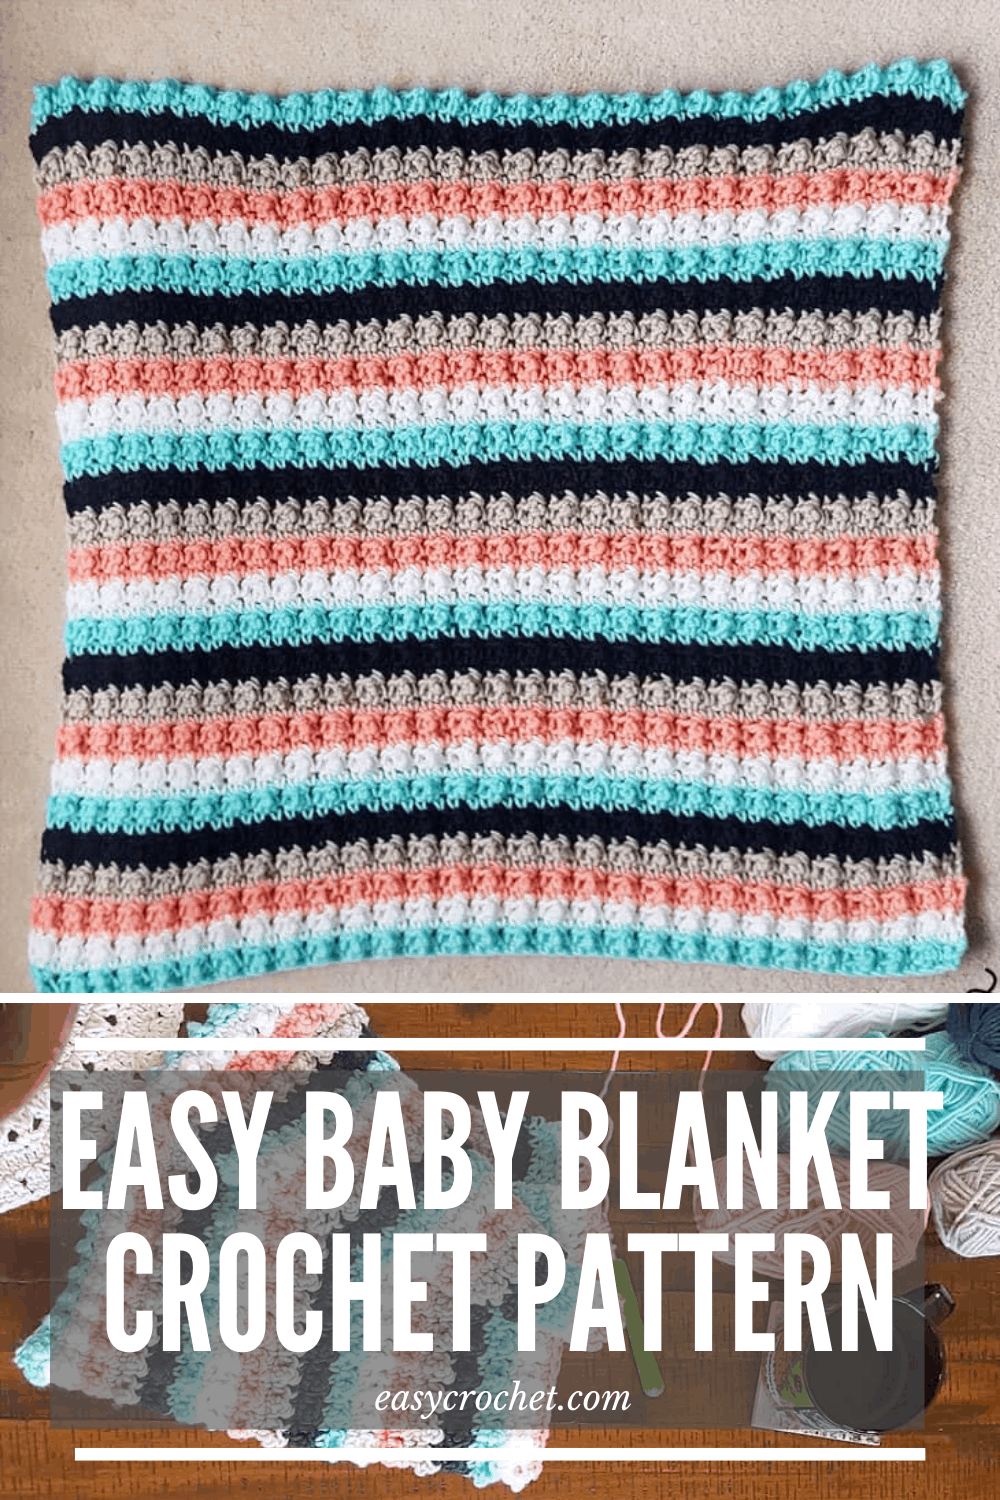 Easy Crochet Baby Blanket Pattern - Free striped crochet baby blanket pattern using simple stitches from Easy Crochet! via @easycrochetcom